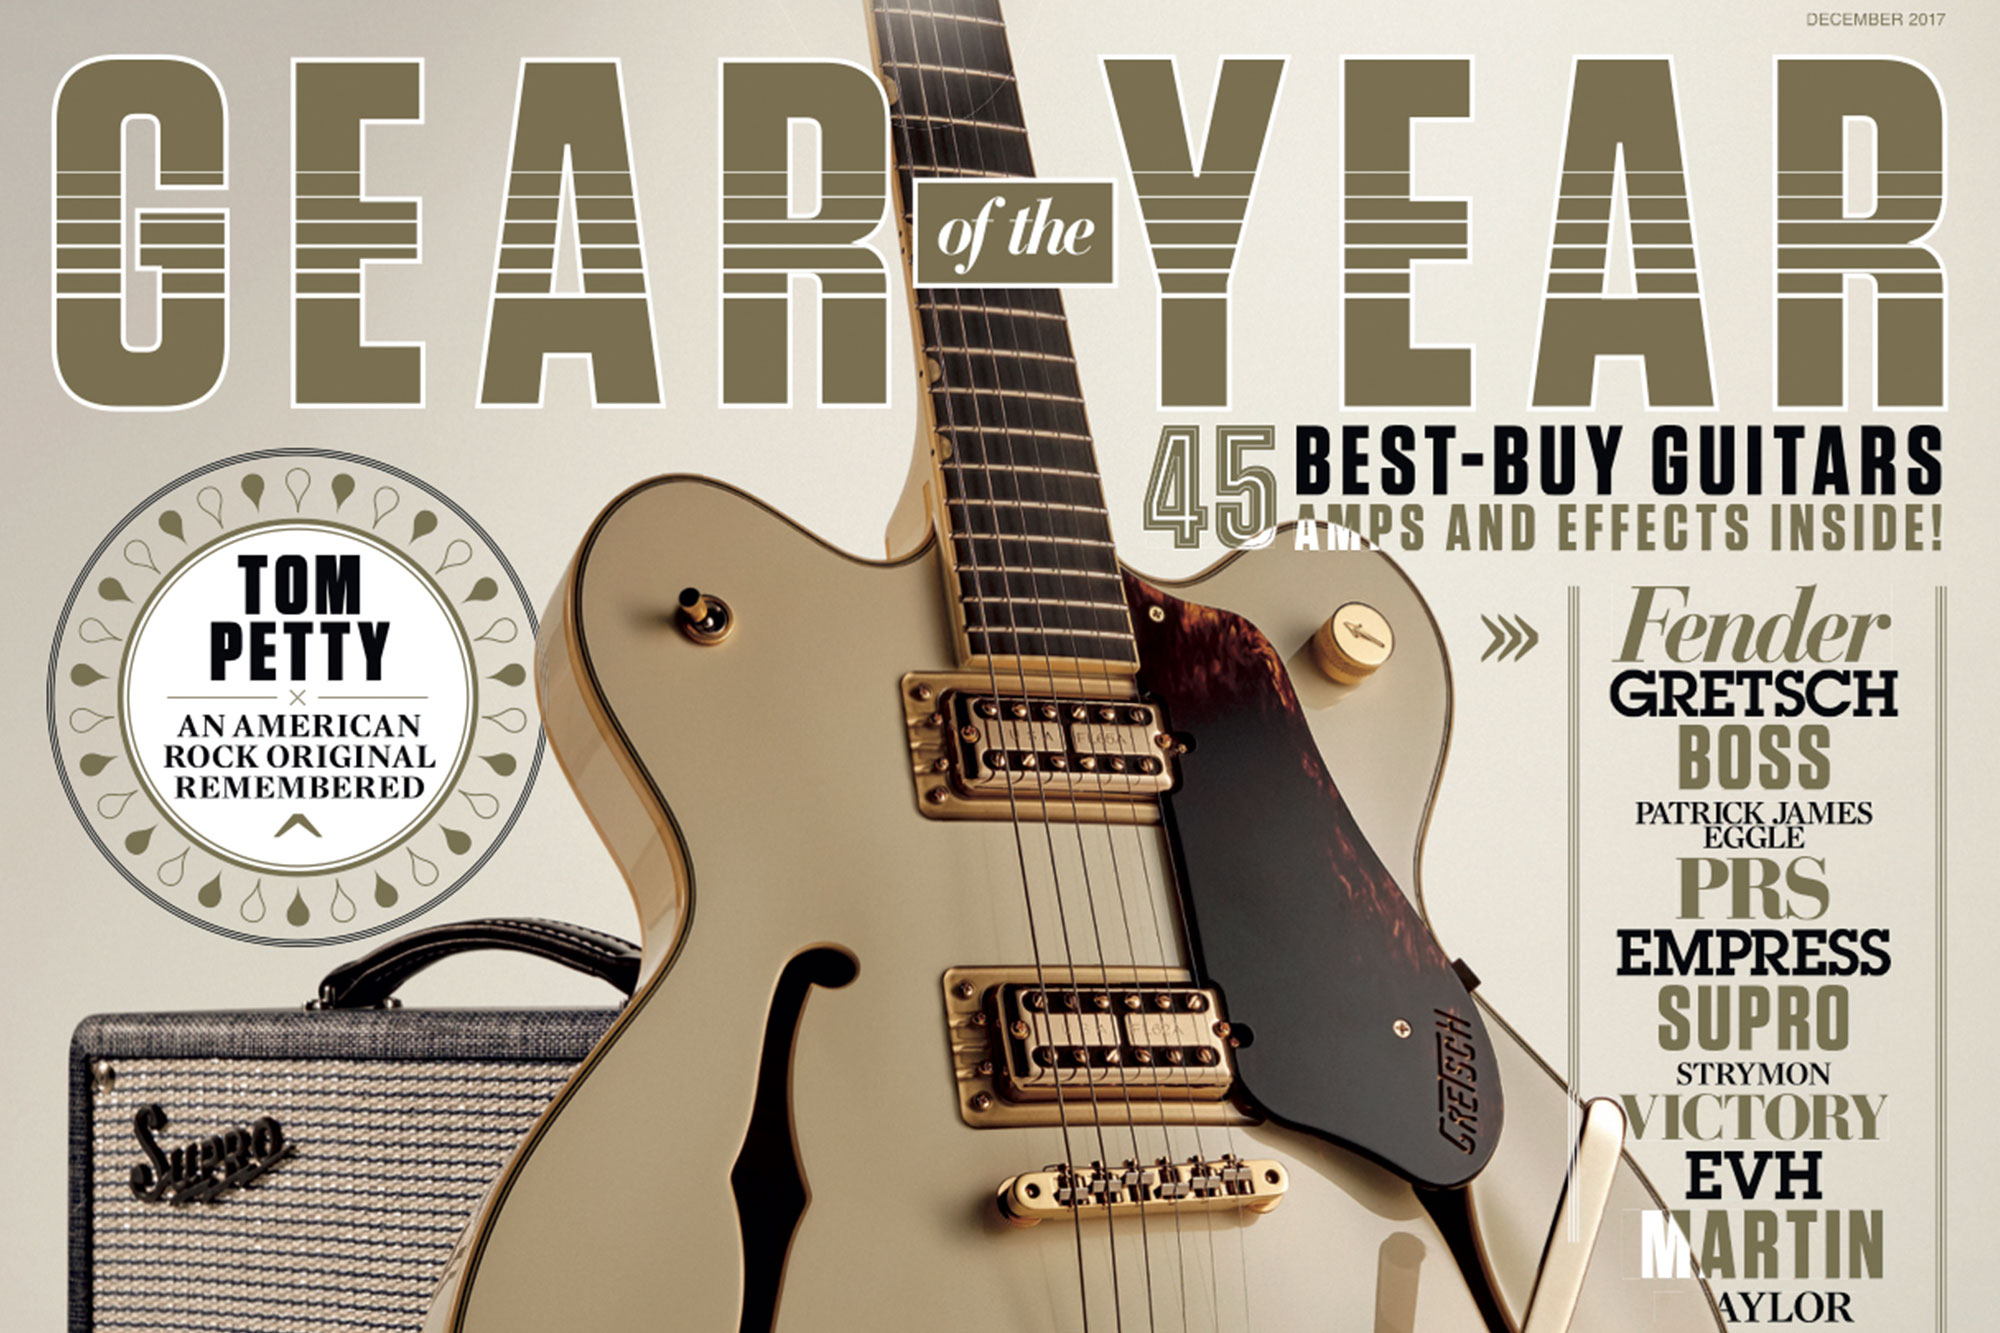 Gretsch G6609 Players Edition Broadkaster Wins Guitarist Gear of the Year Award